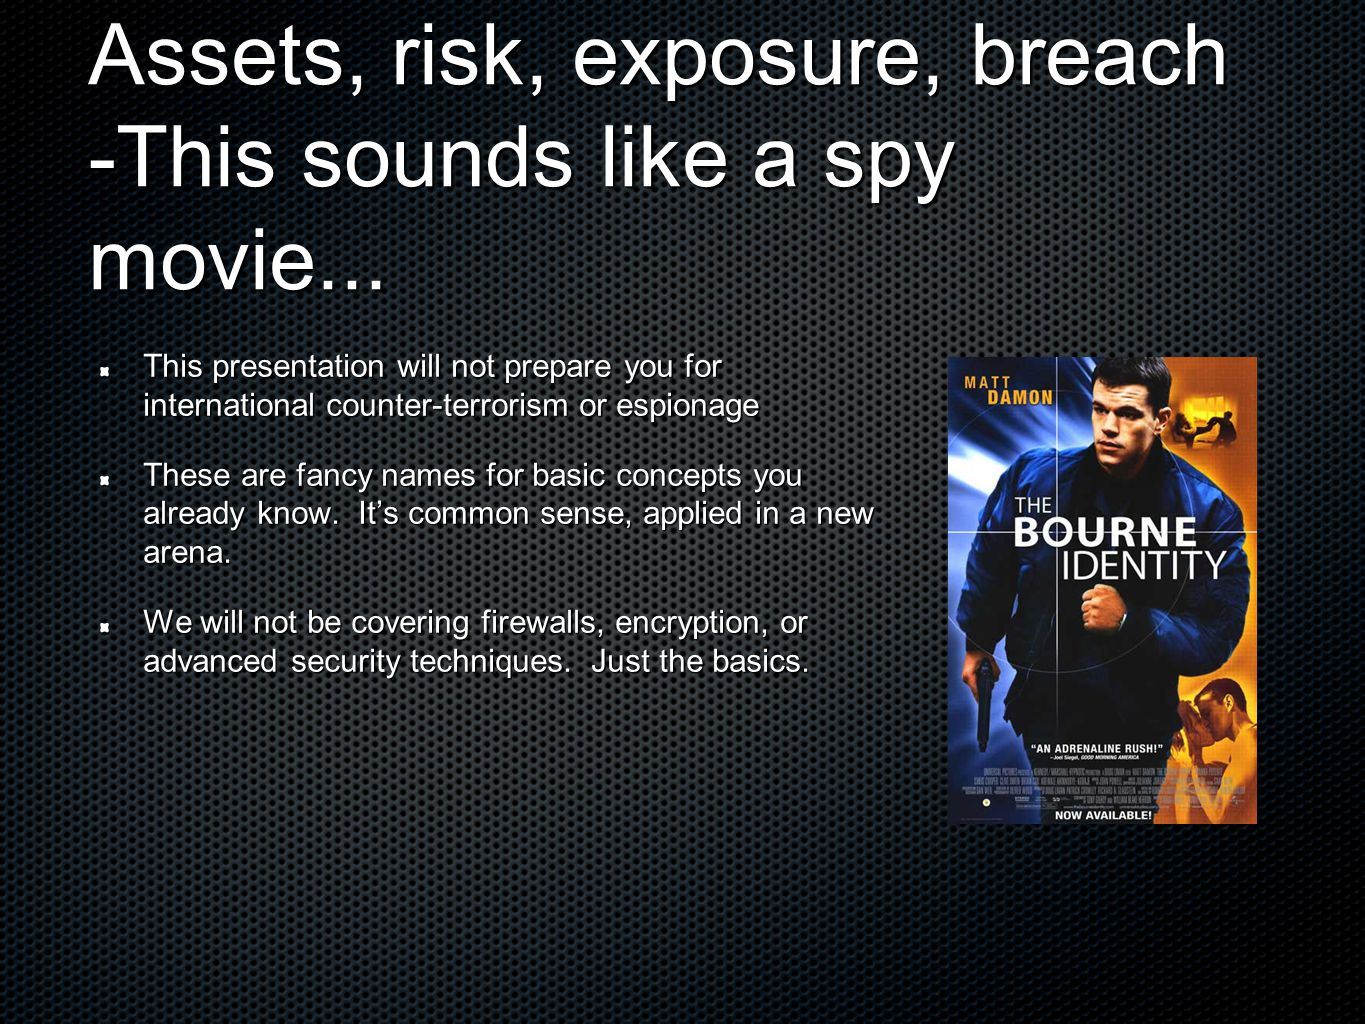 Assets, risk, exposure, breach -This sounds like a spy movie...